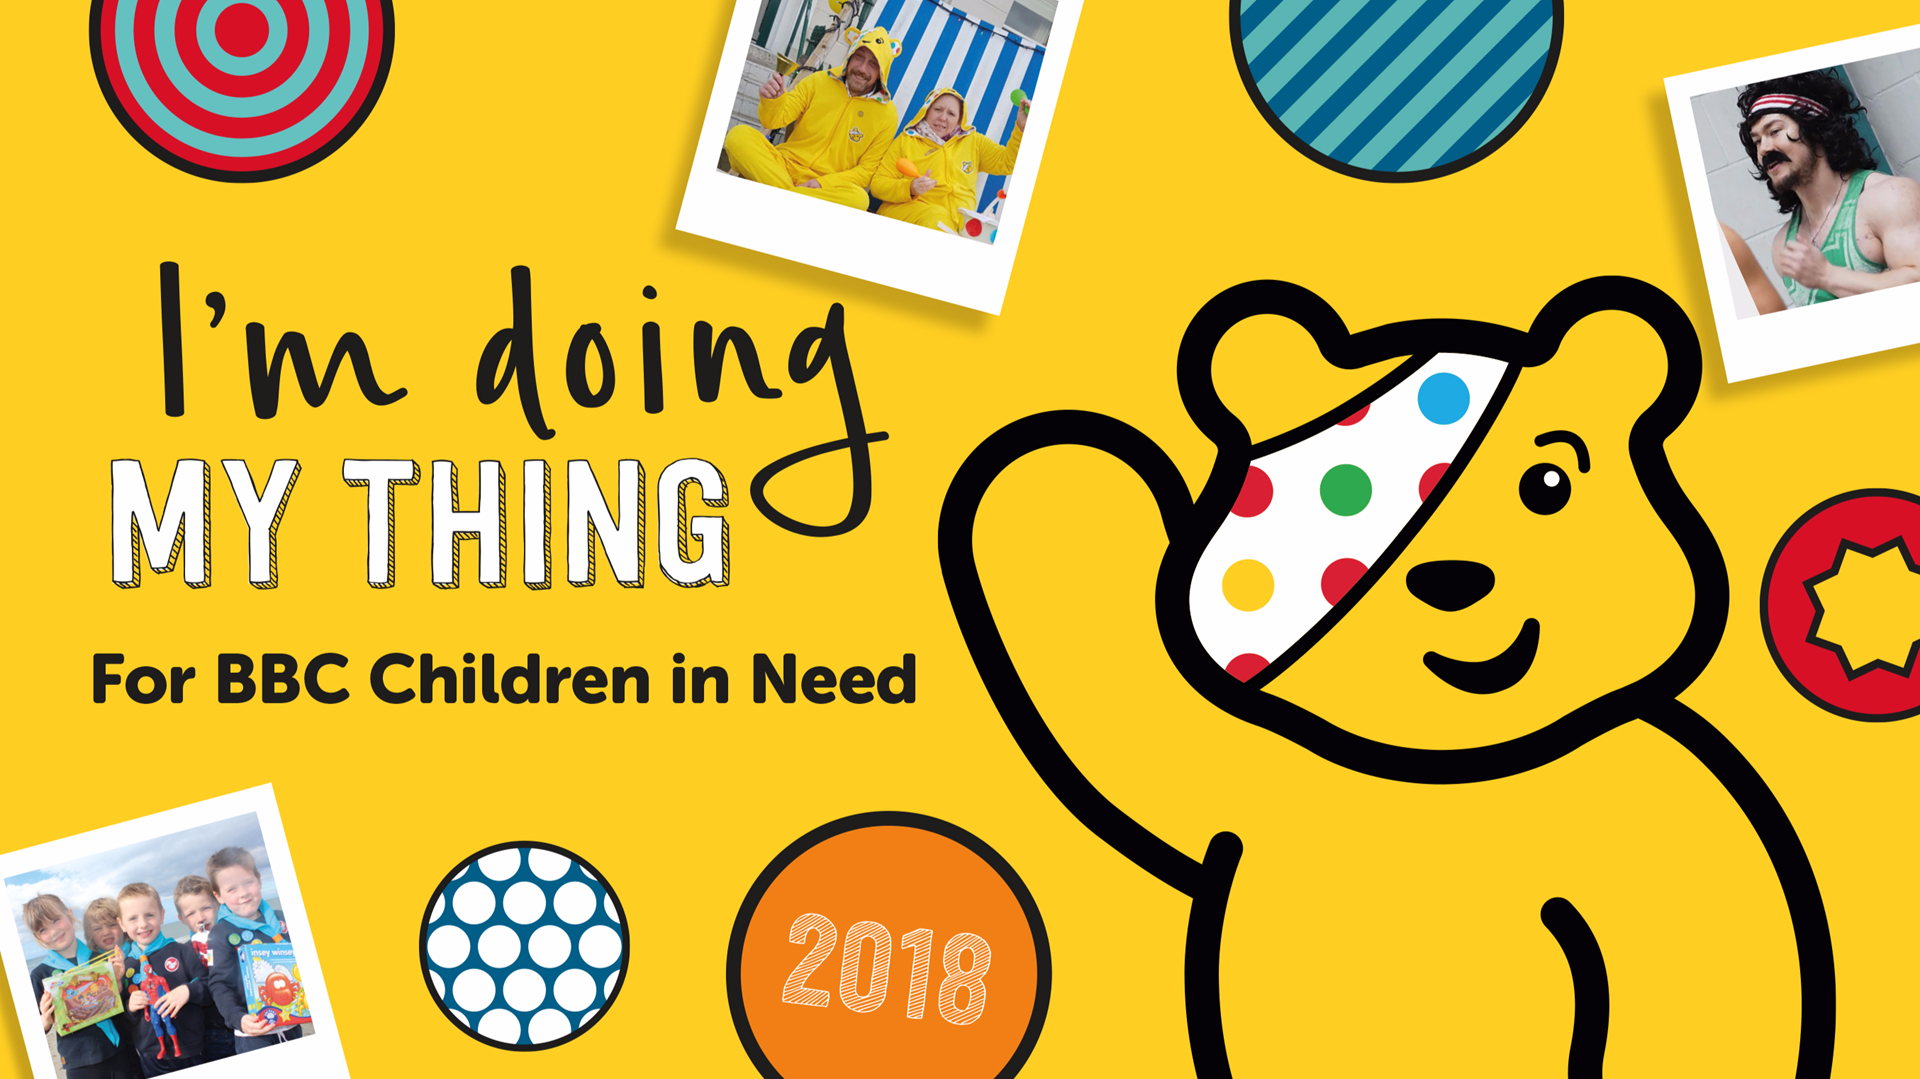 dc4d1cdf61c Keith Healy is fundraising for BBC Children in Need